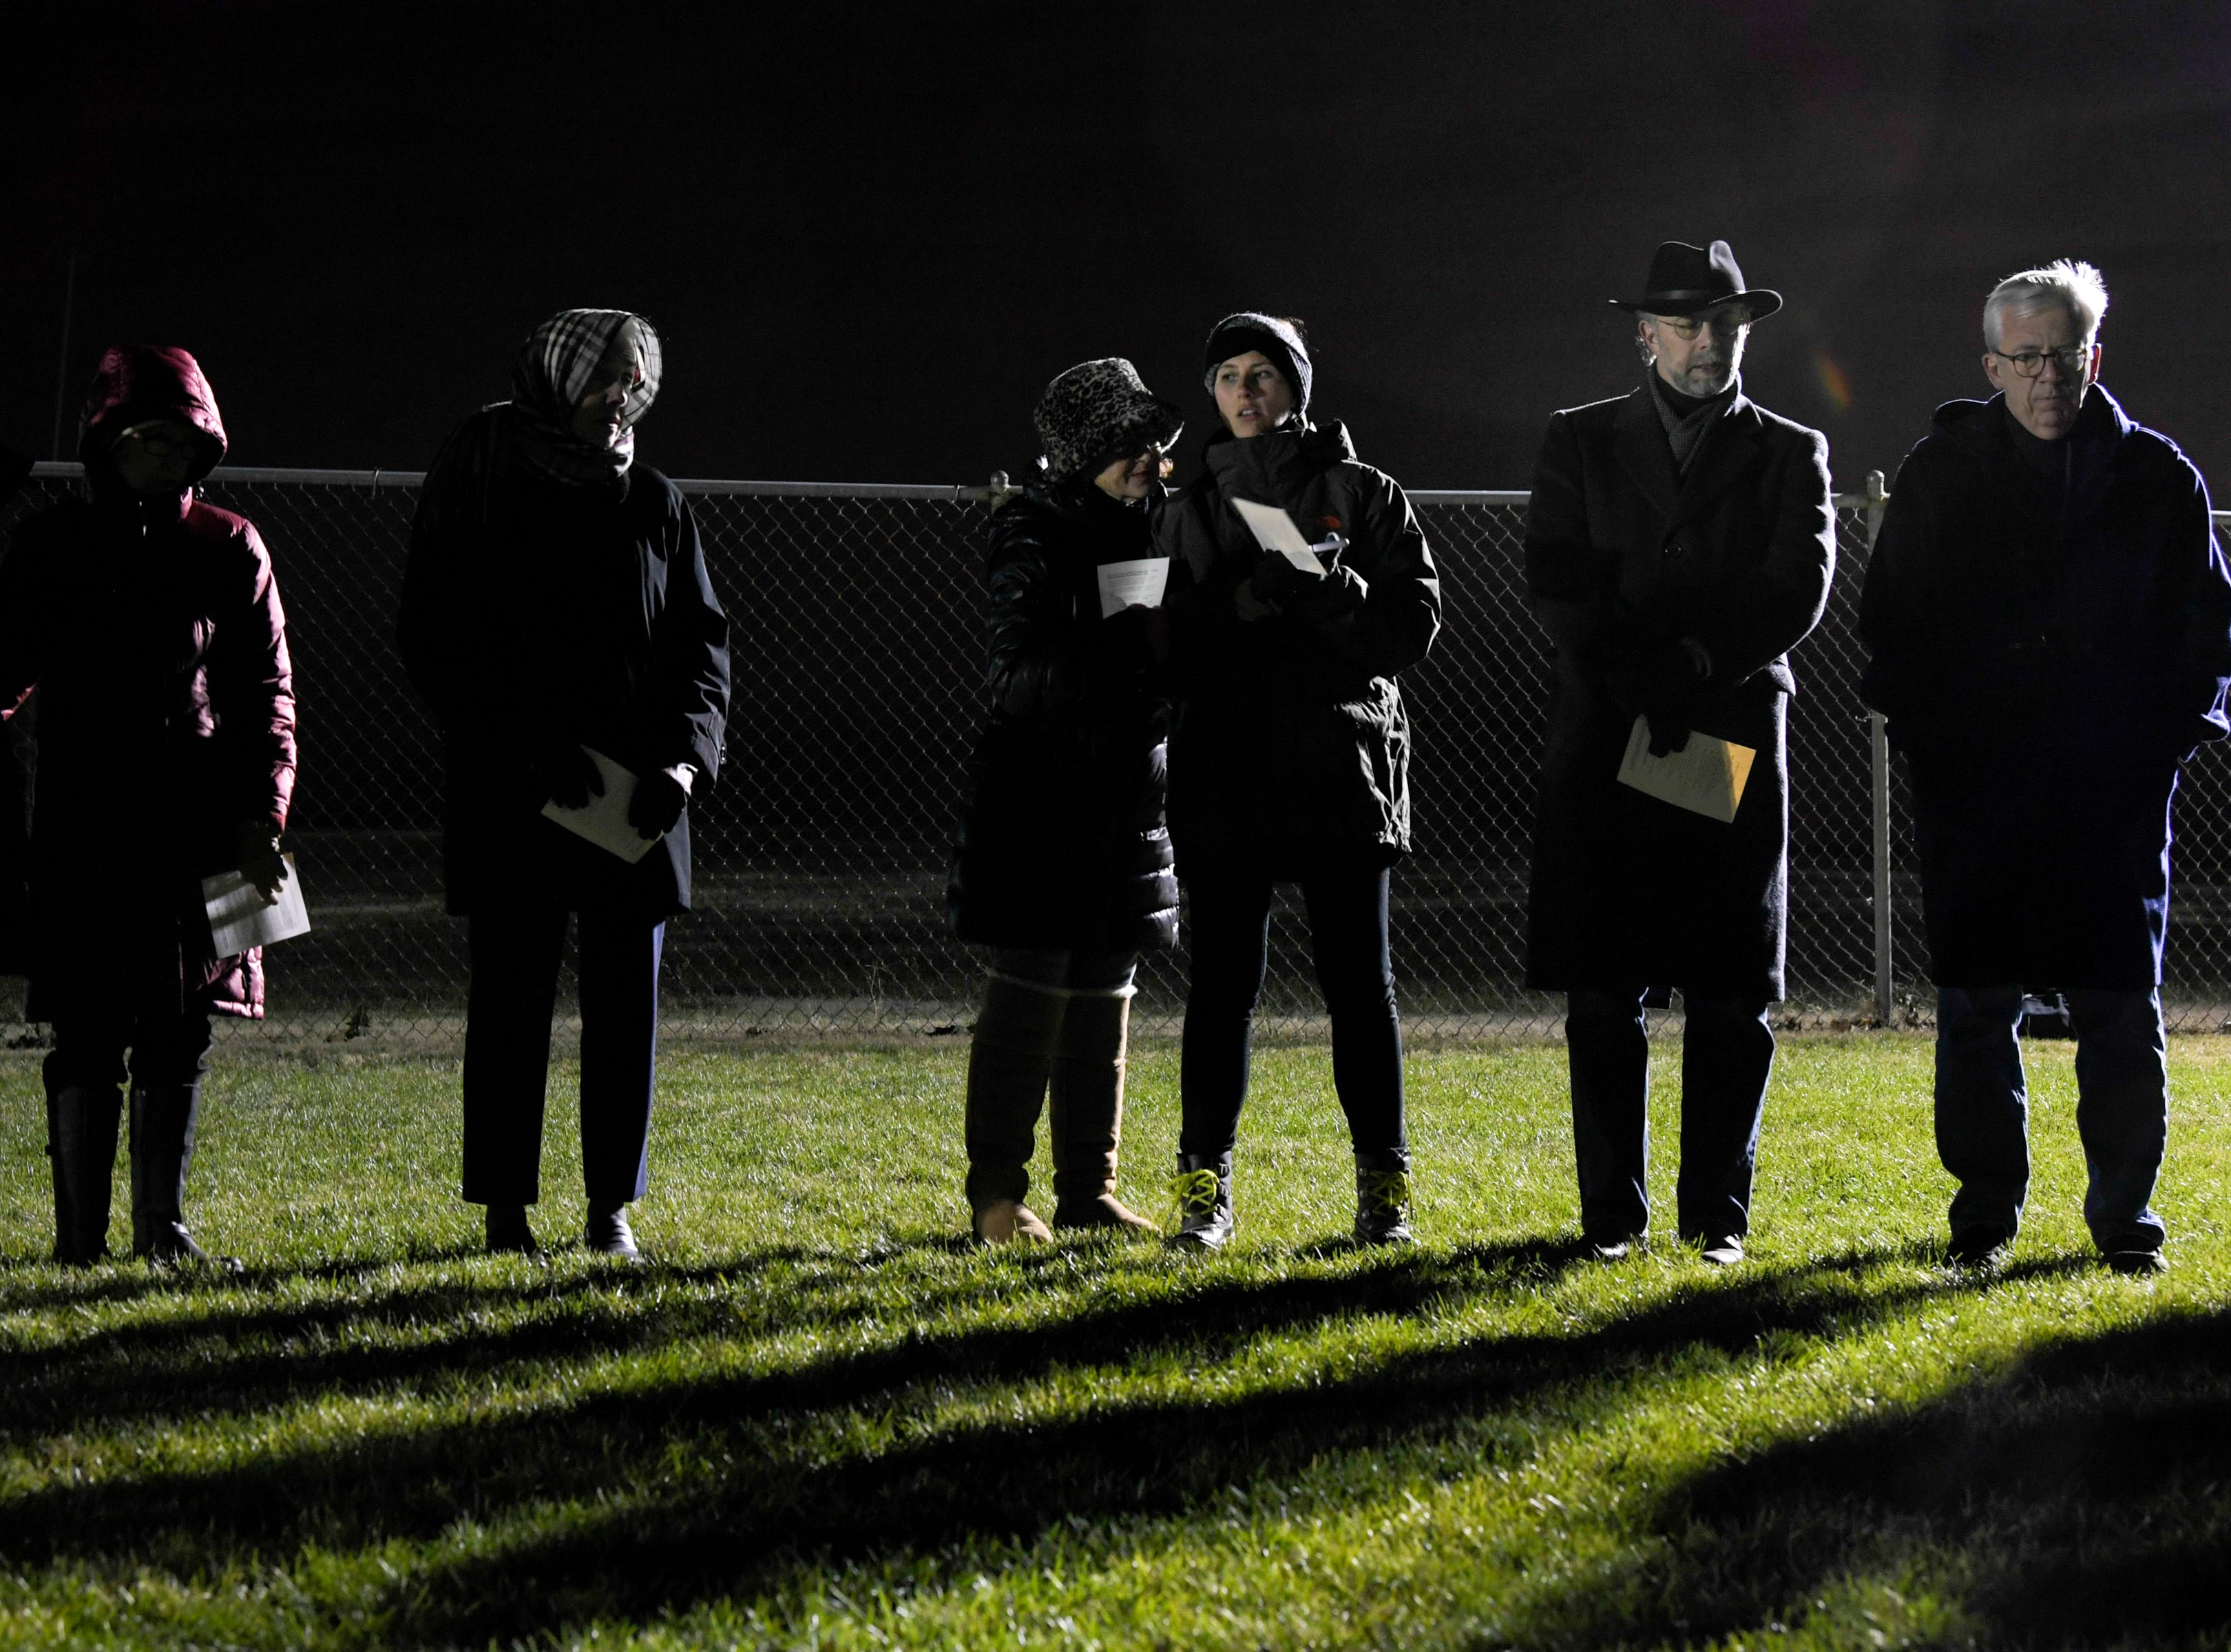 Protesters against the death penalty gather for song and prayer in a field outside Riverbend Maximum Security Institution before the execution of Tennessee death row inmate David Earl Miller on Thursday, Dec. 6, 2018 in Nashville, Tenn. Miller was sentenced to death for the 1981 murder of Lee Standifer, 23, in Knoxville.